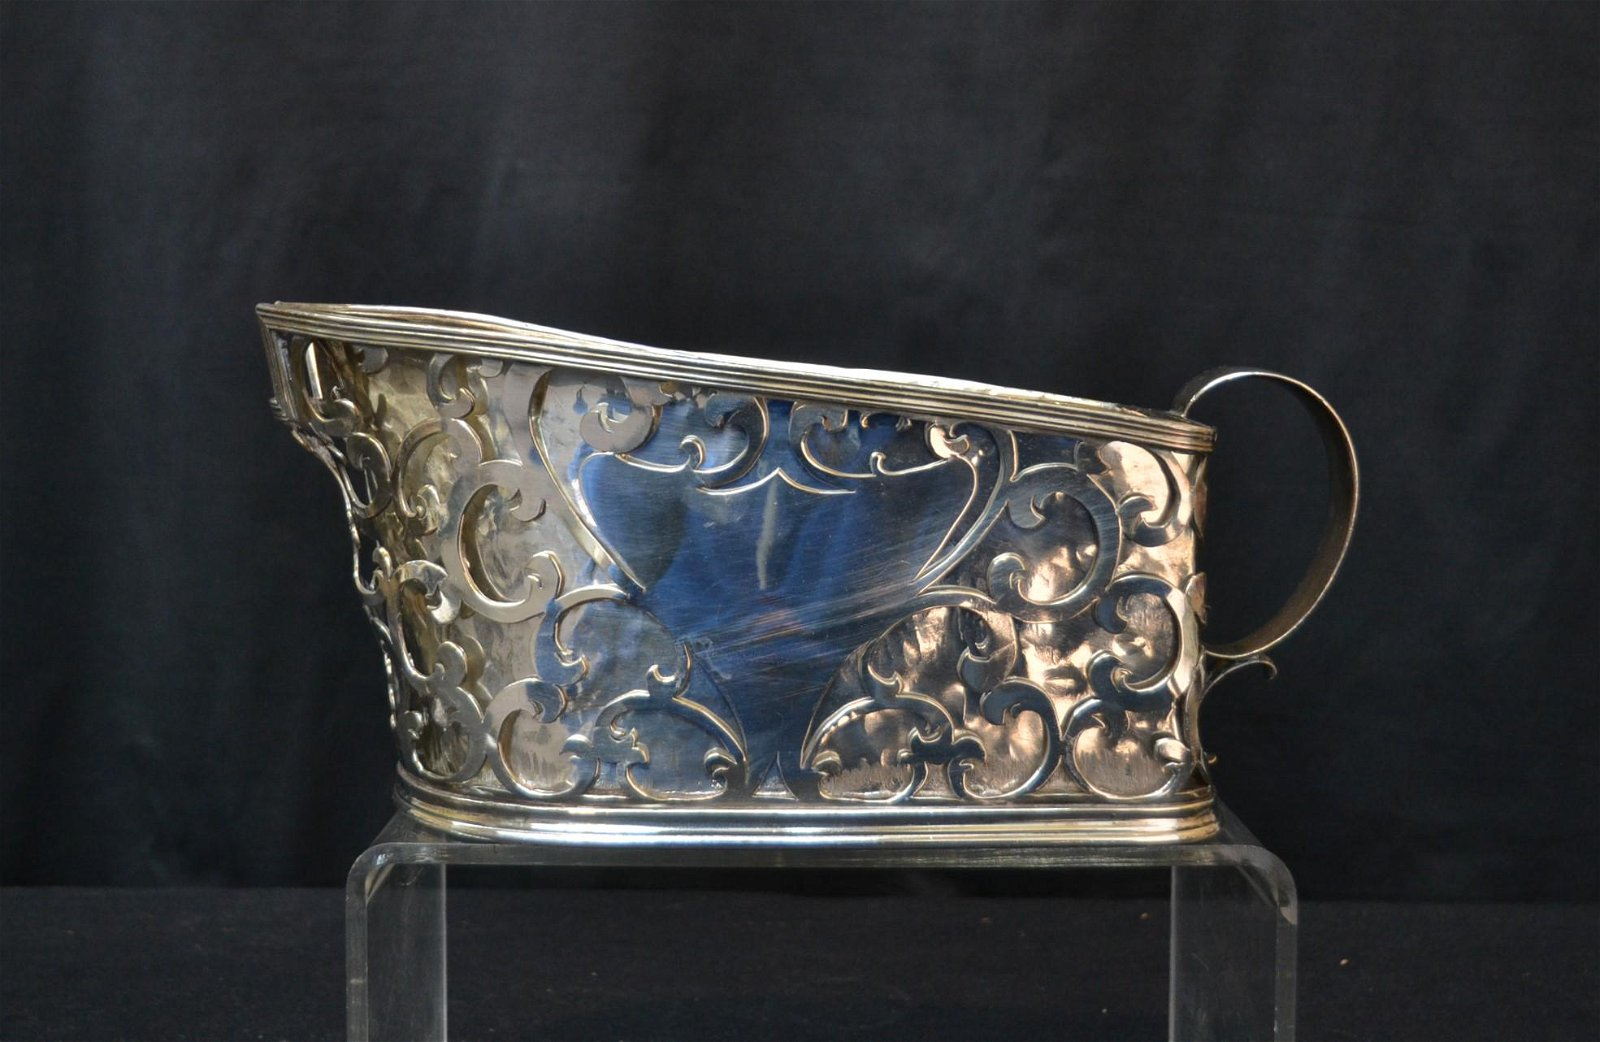 RETICULATED SILVER PLATE CHAMPAGNE BUCKET